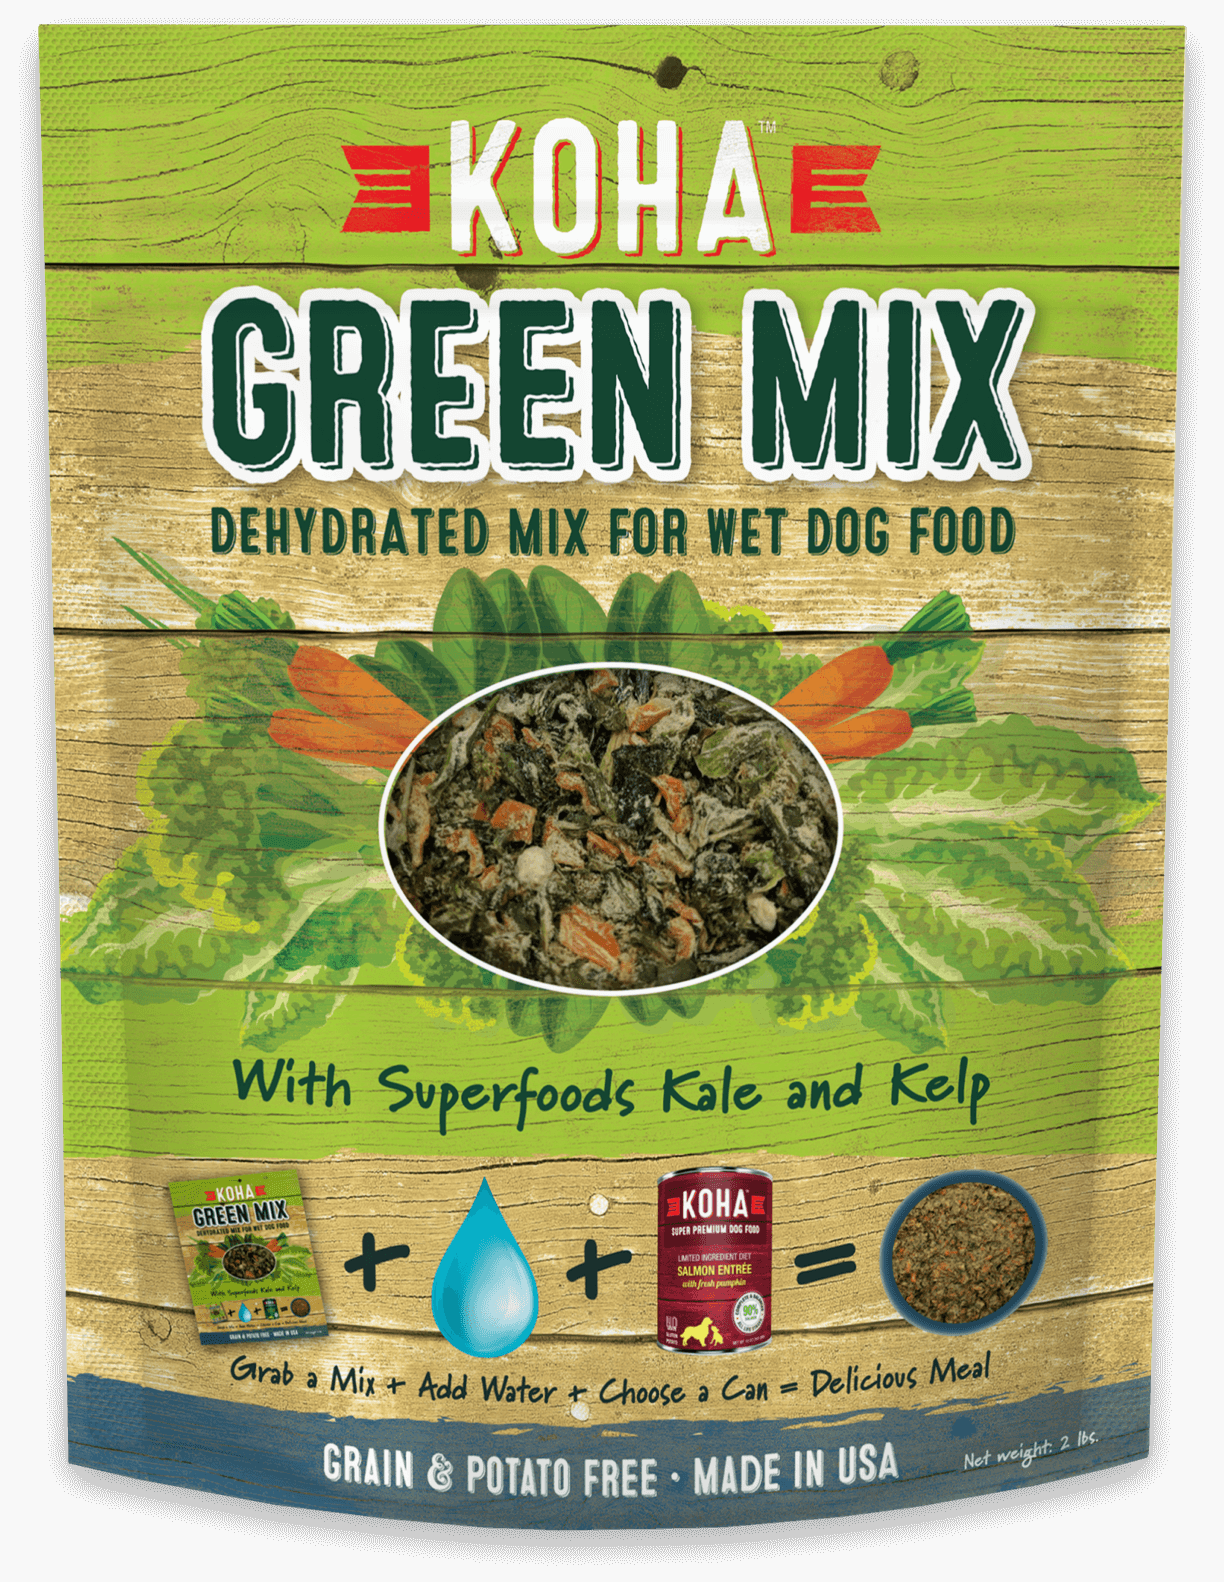 Green Mix - Dehydrated Mix for Wet & Raw Dog Food - 2 lb. Bag